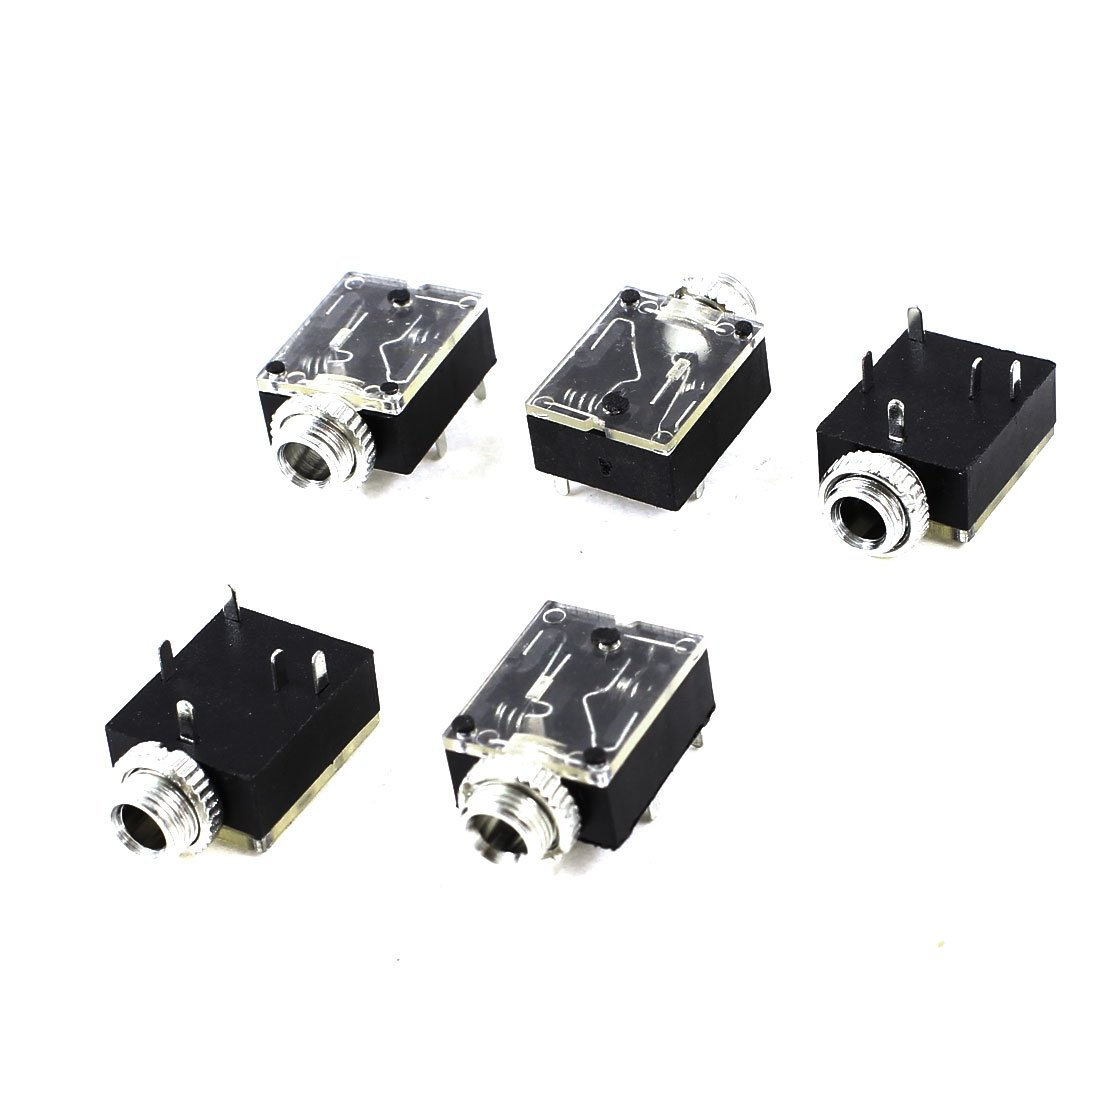 WSFS Hot 5 Pcs 5 Pin 3.5mm Female Audio Stereo Jack Socket PCB Panel Mount wsfs hot 10 pcs black plastic housing 3 5mm audio jack plug headphone connector